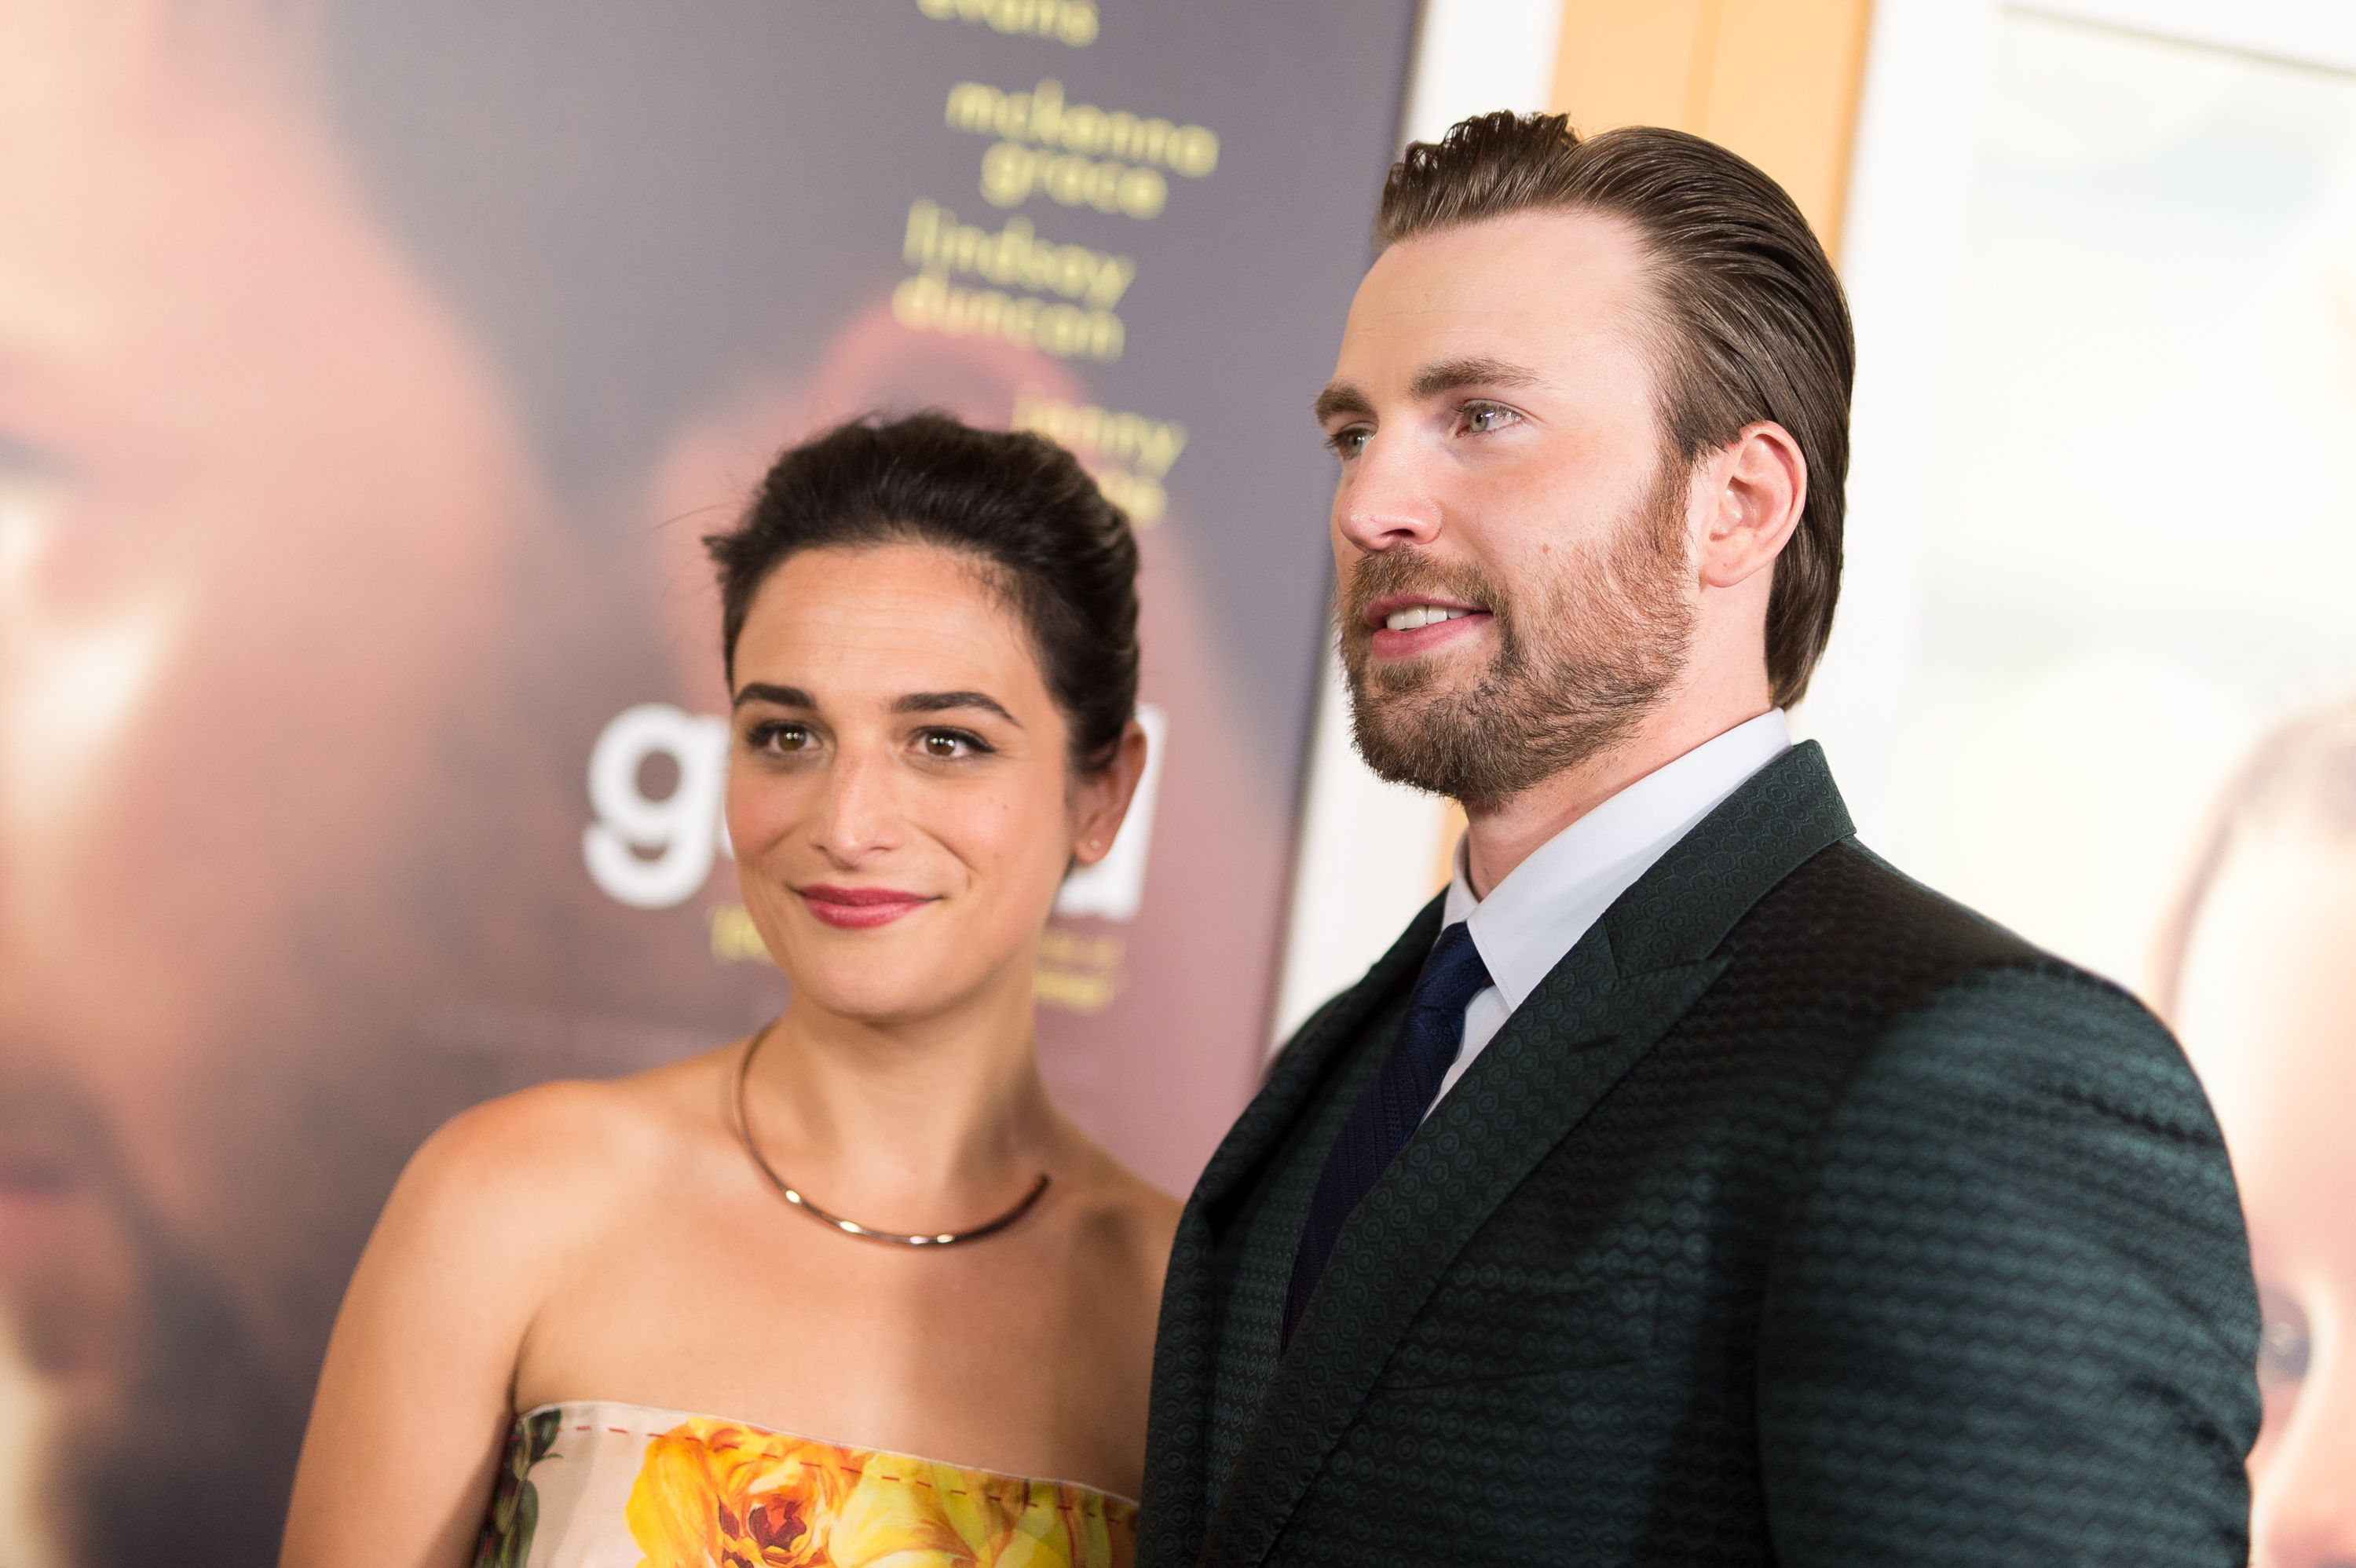 Jenny Slate and Chris Evans at the premiere of 'Gifted' in 2017 in Los Angeles, California   Source: Getty Images